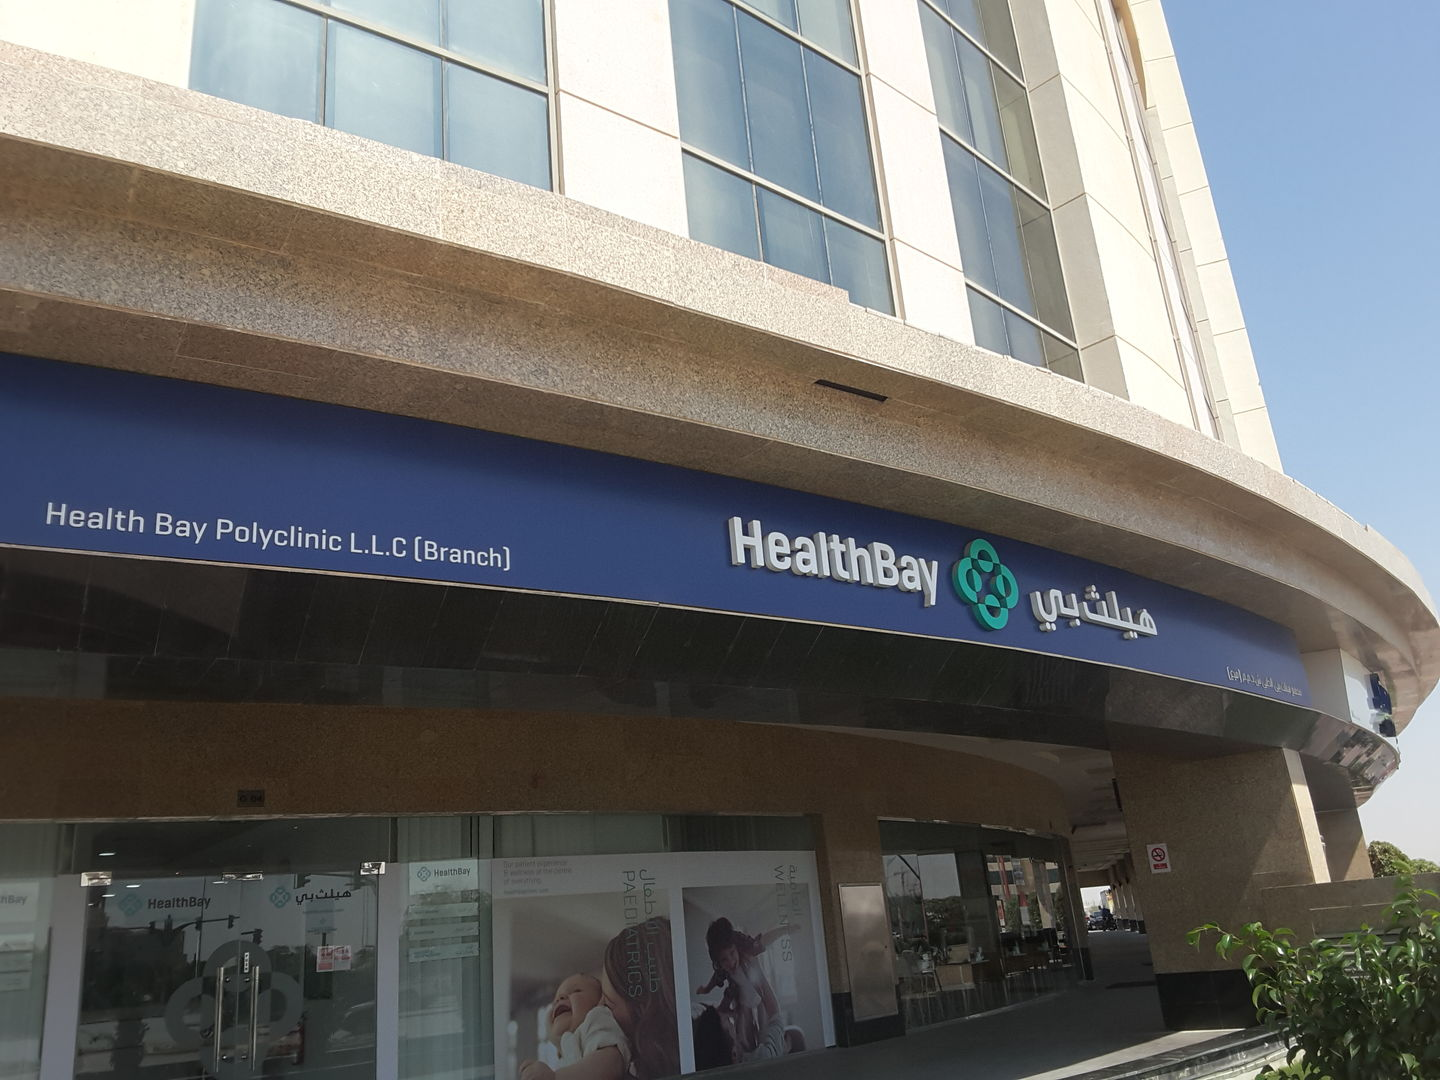 HiDubai-business-health-bay-polyclinic-beauty-wellness-health-hospitals-clinics-dubai-motor-city-al-hebiah-1-dubai-2